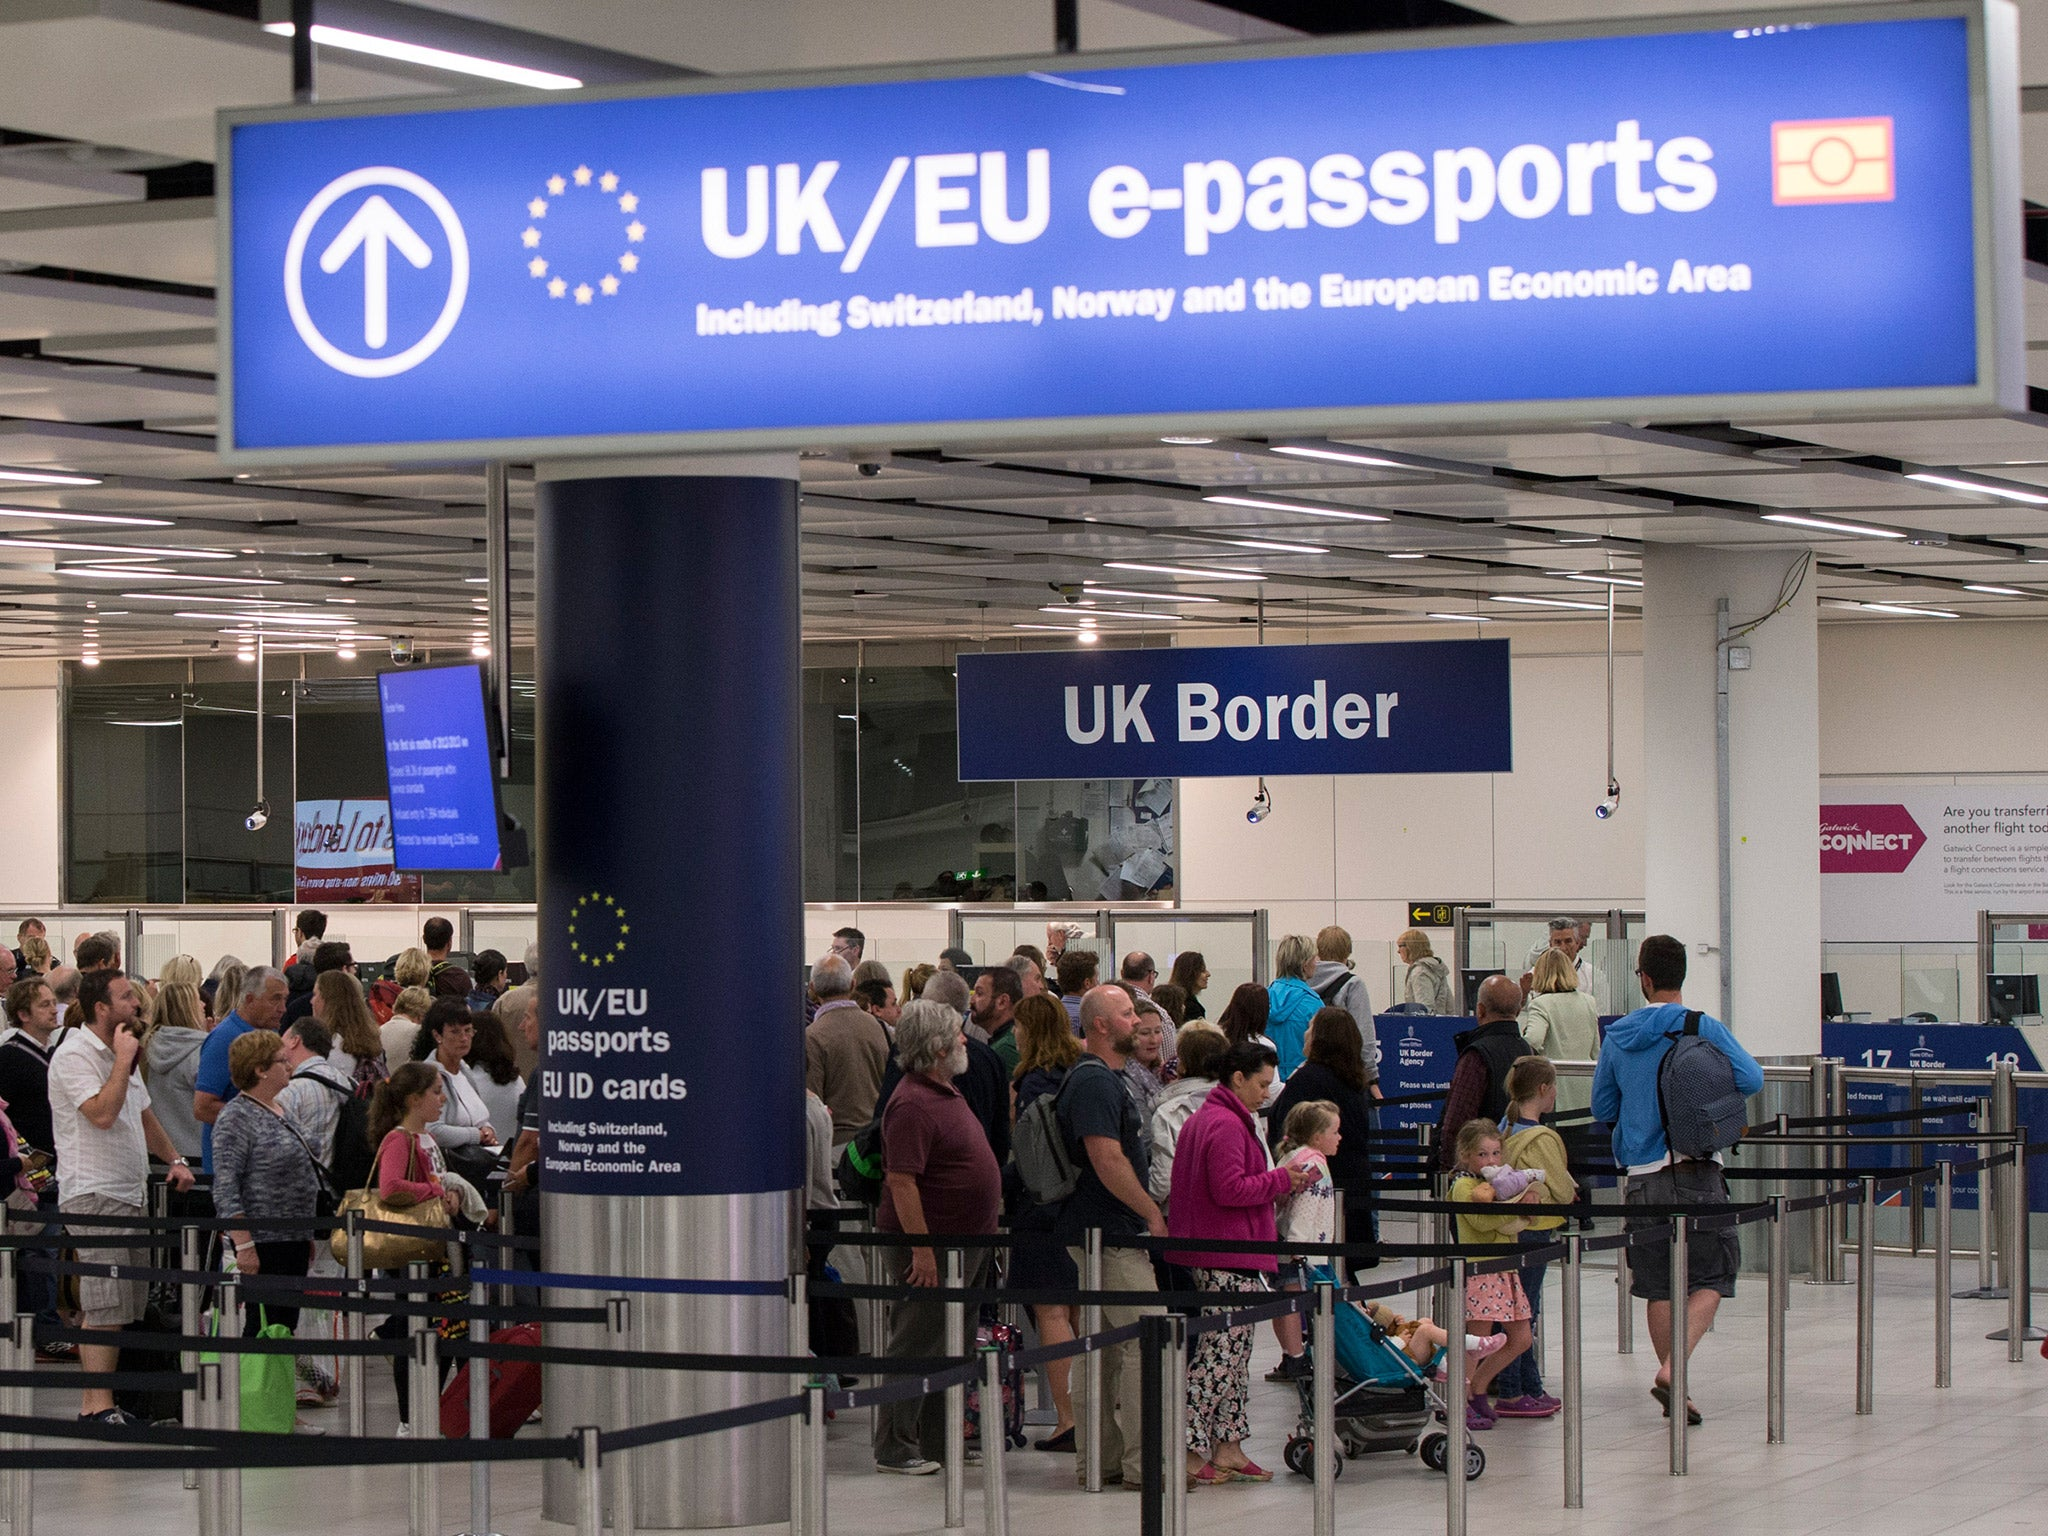 Britons will need to pay €7 to travel to Europe post-Brexit, EU reveals